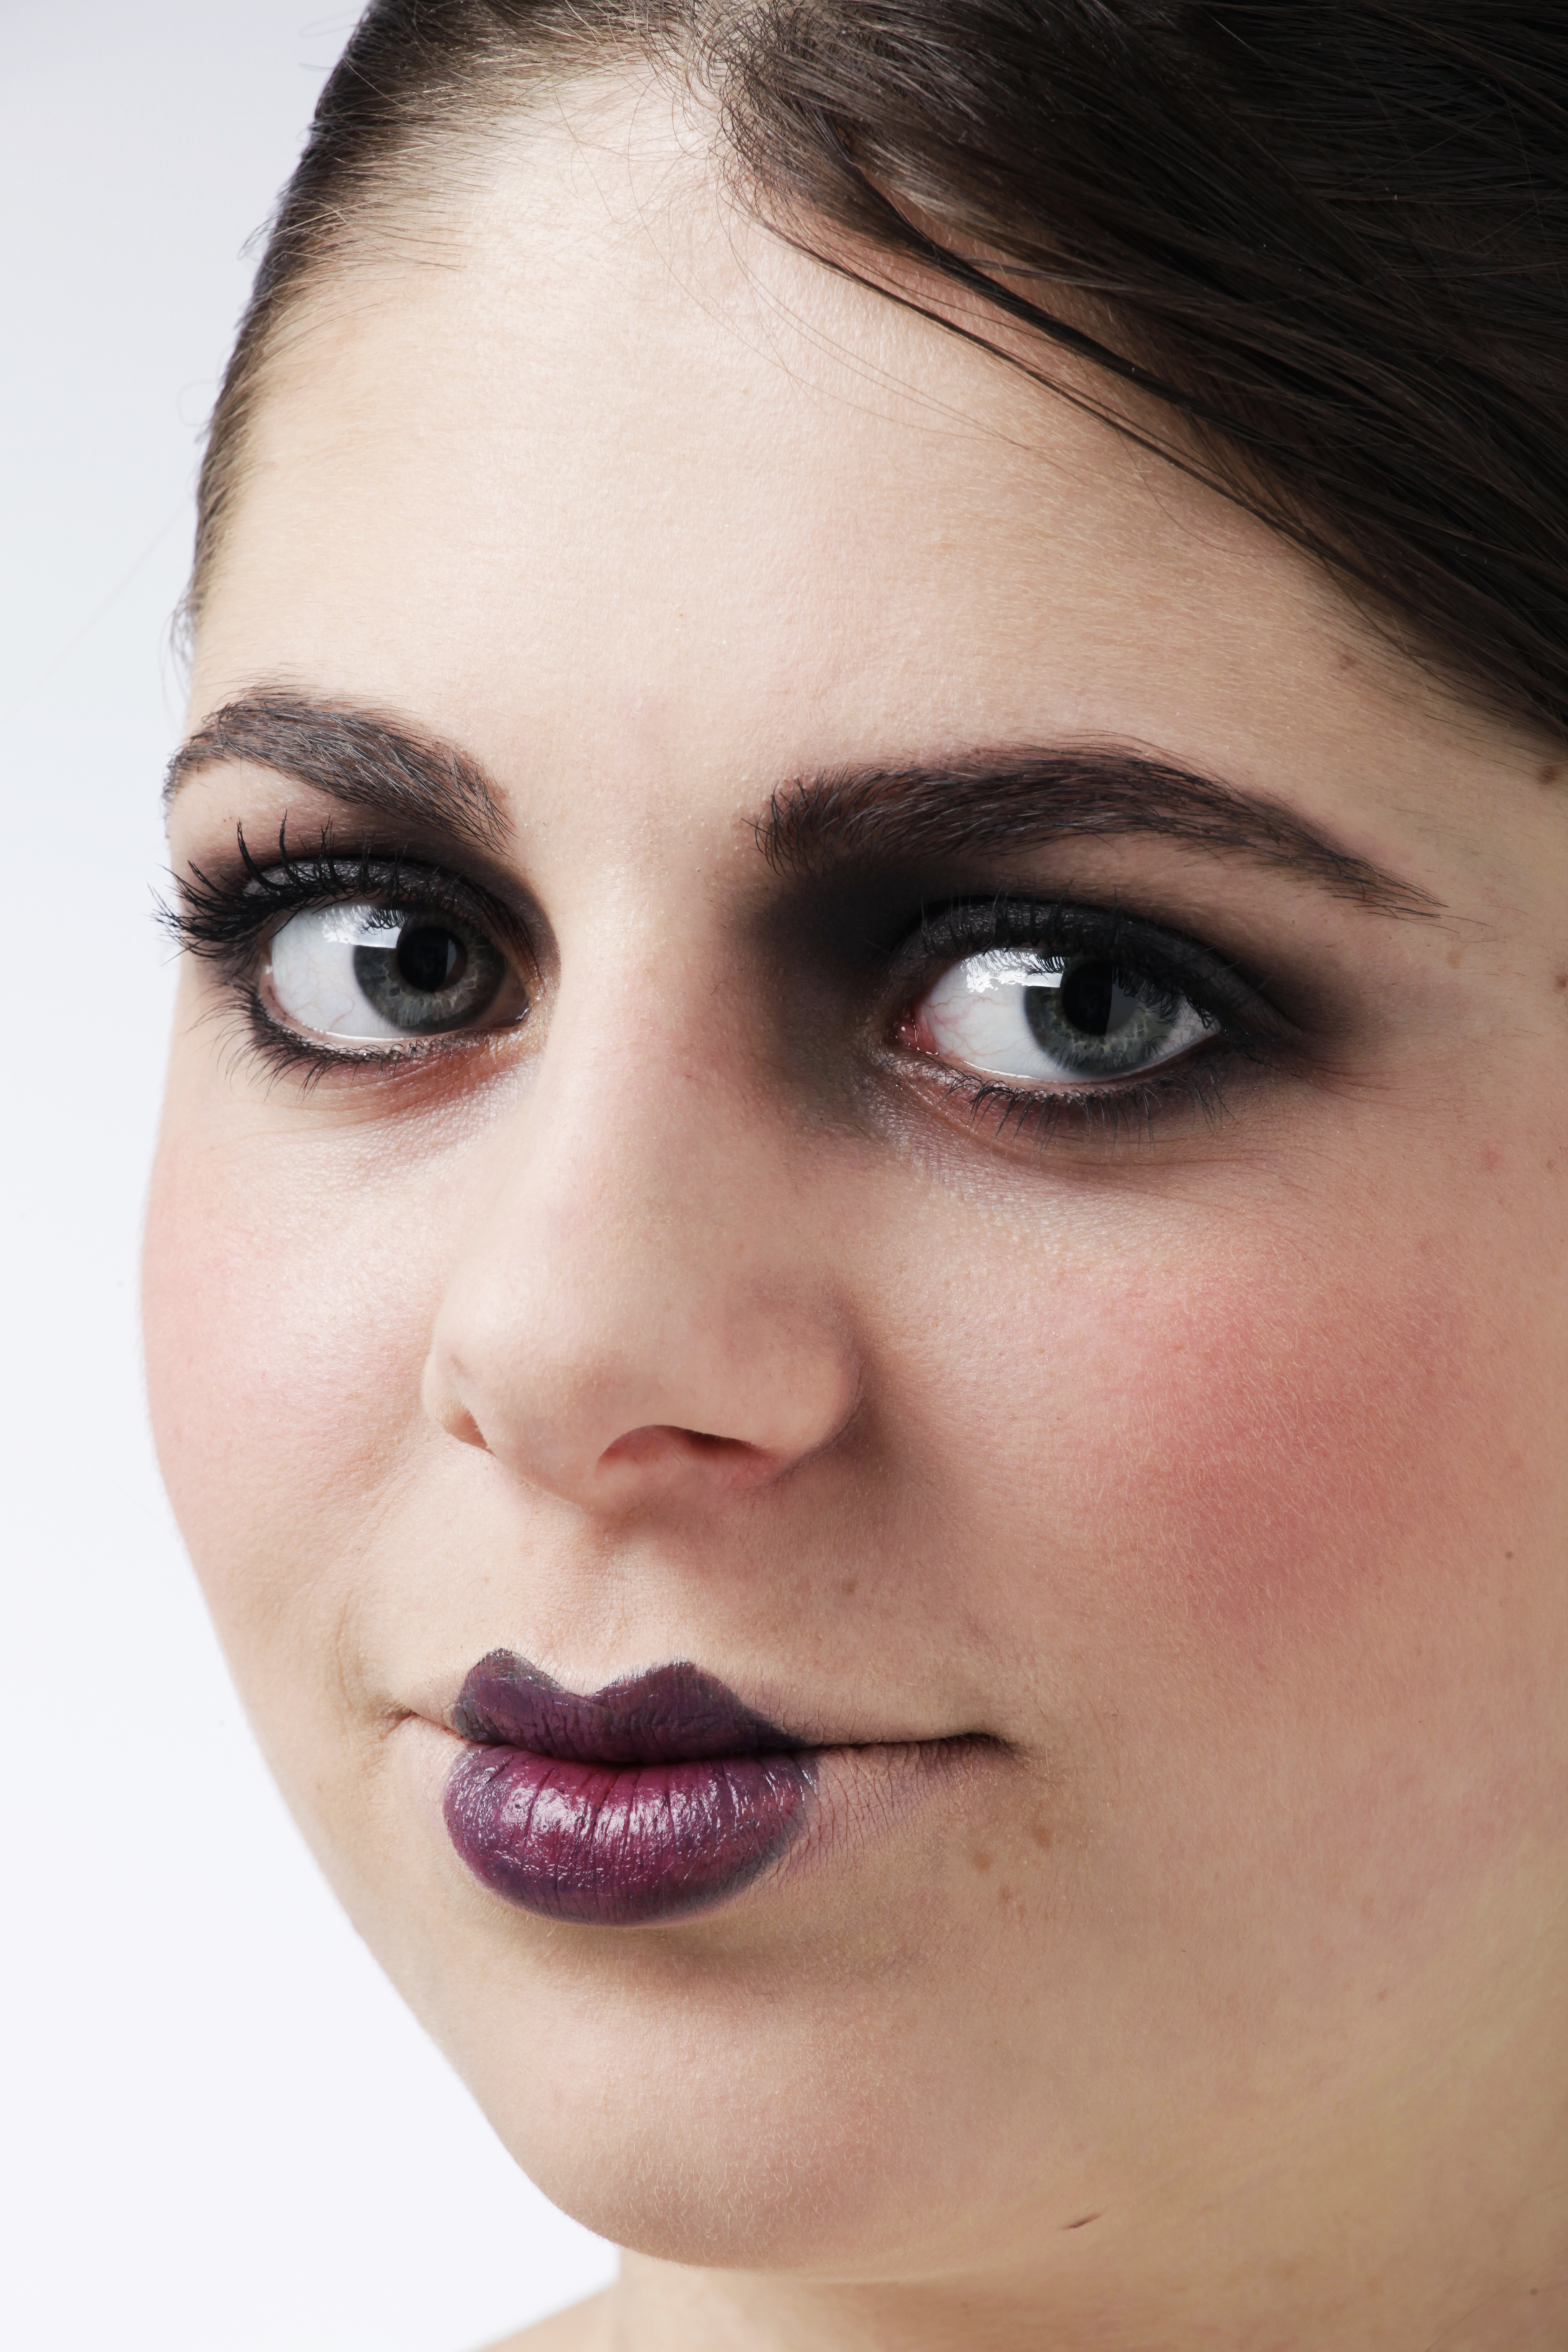 How to Make Your Lips Look Dark or Gothicish but Natural